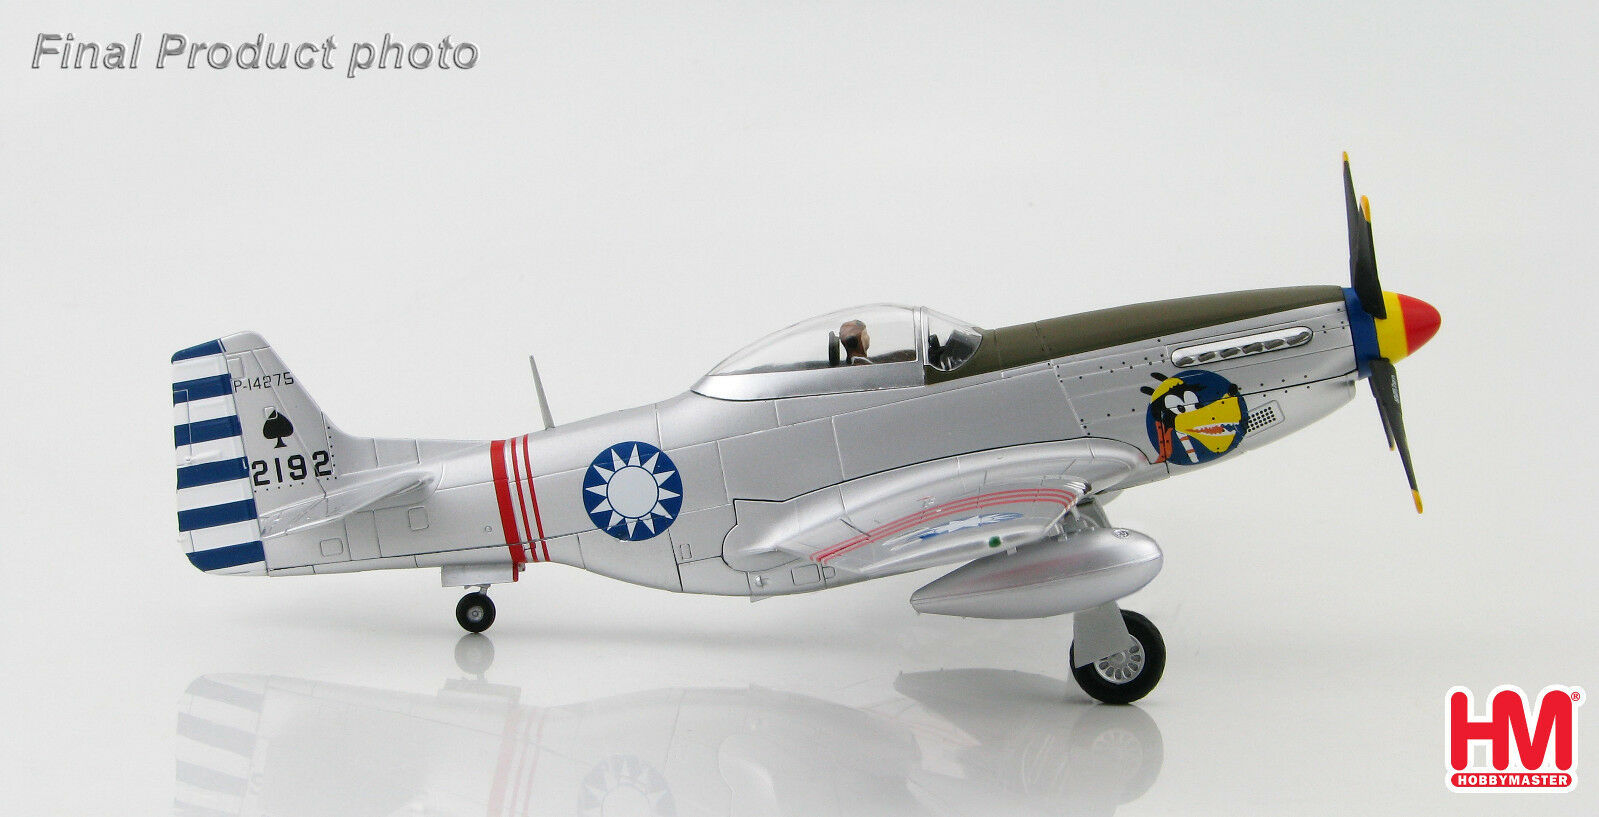 Hobby - meister ha7731 1   48 p-51d mustang p-14275, 21. sqn, 4. fg roc.